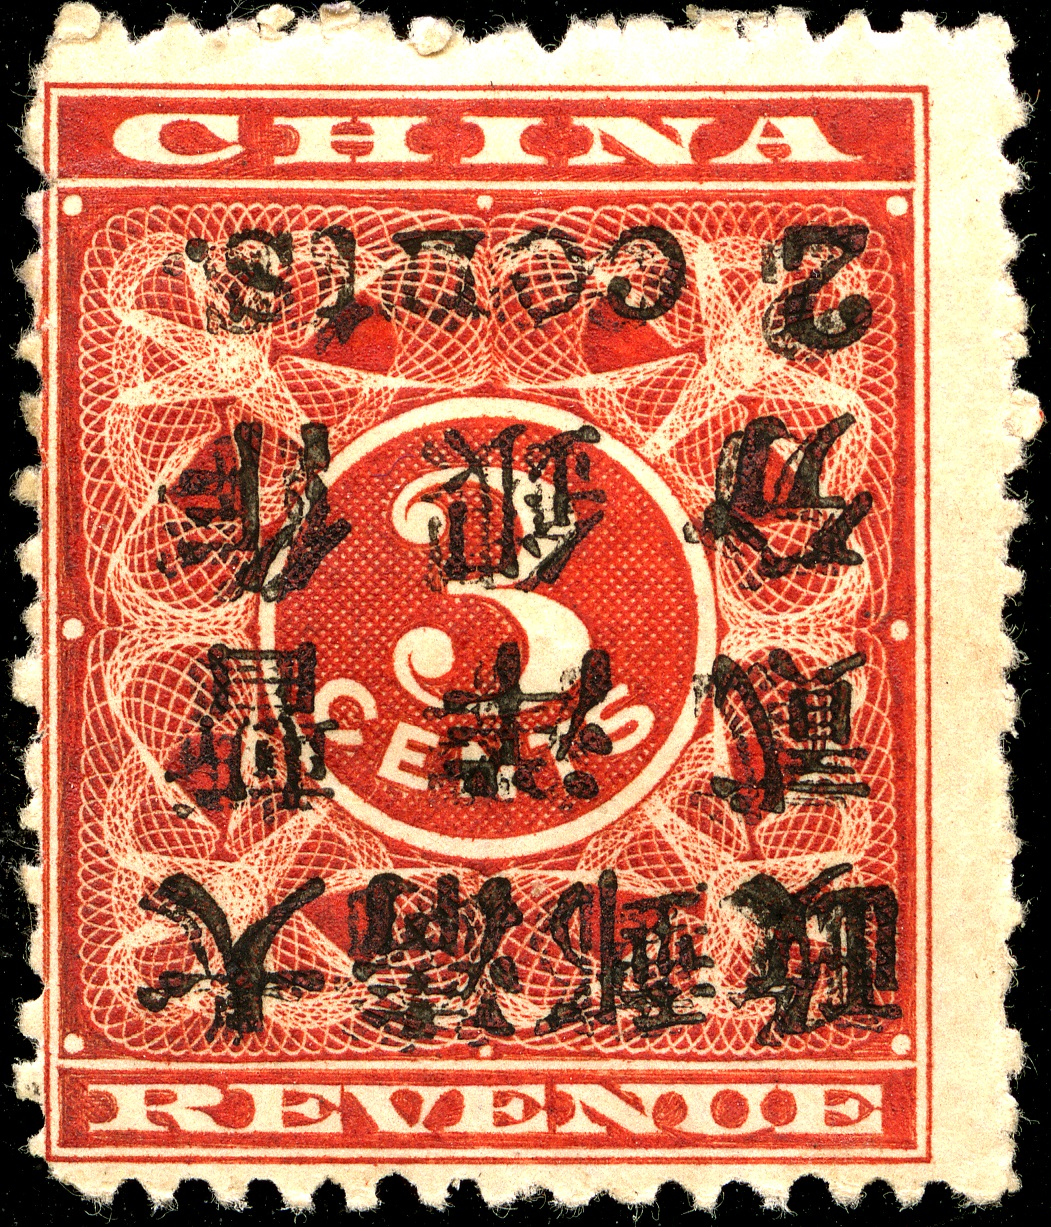 China: 1897 3 cents red revenue with 2 cents surcharge double, both inverted, unused. From the Murray Collection.